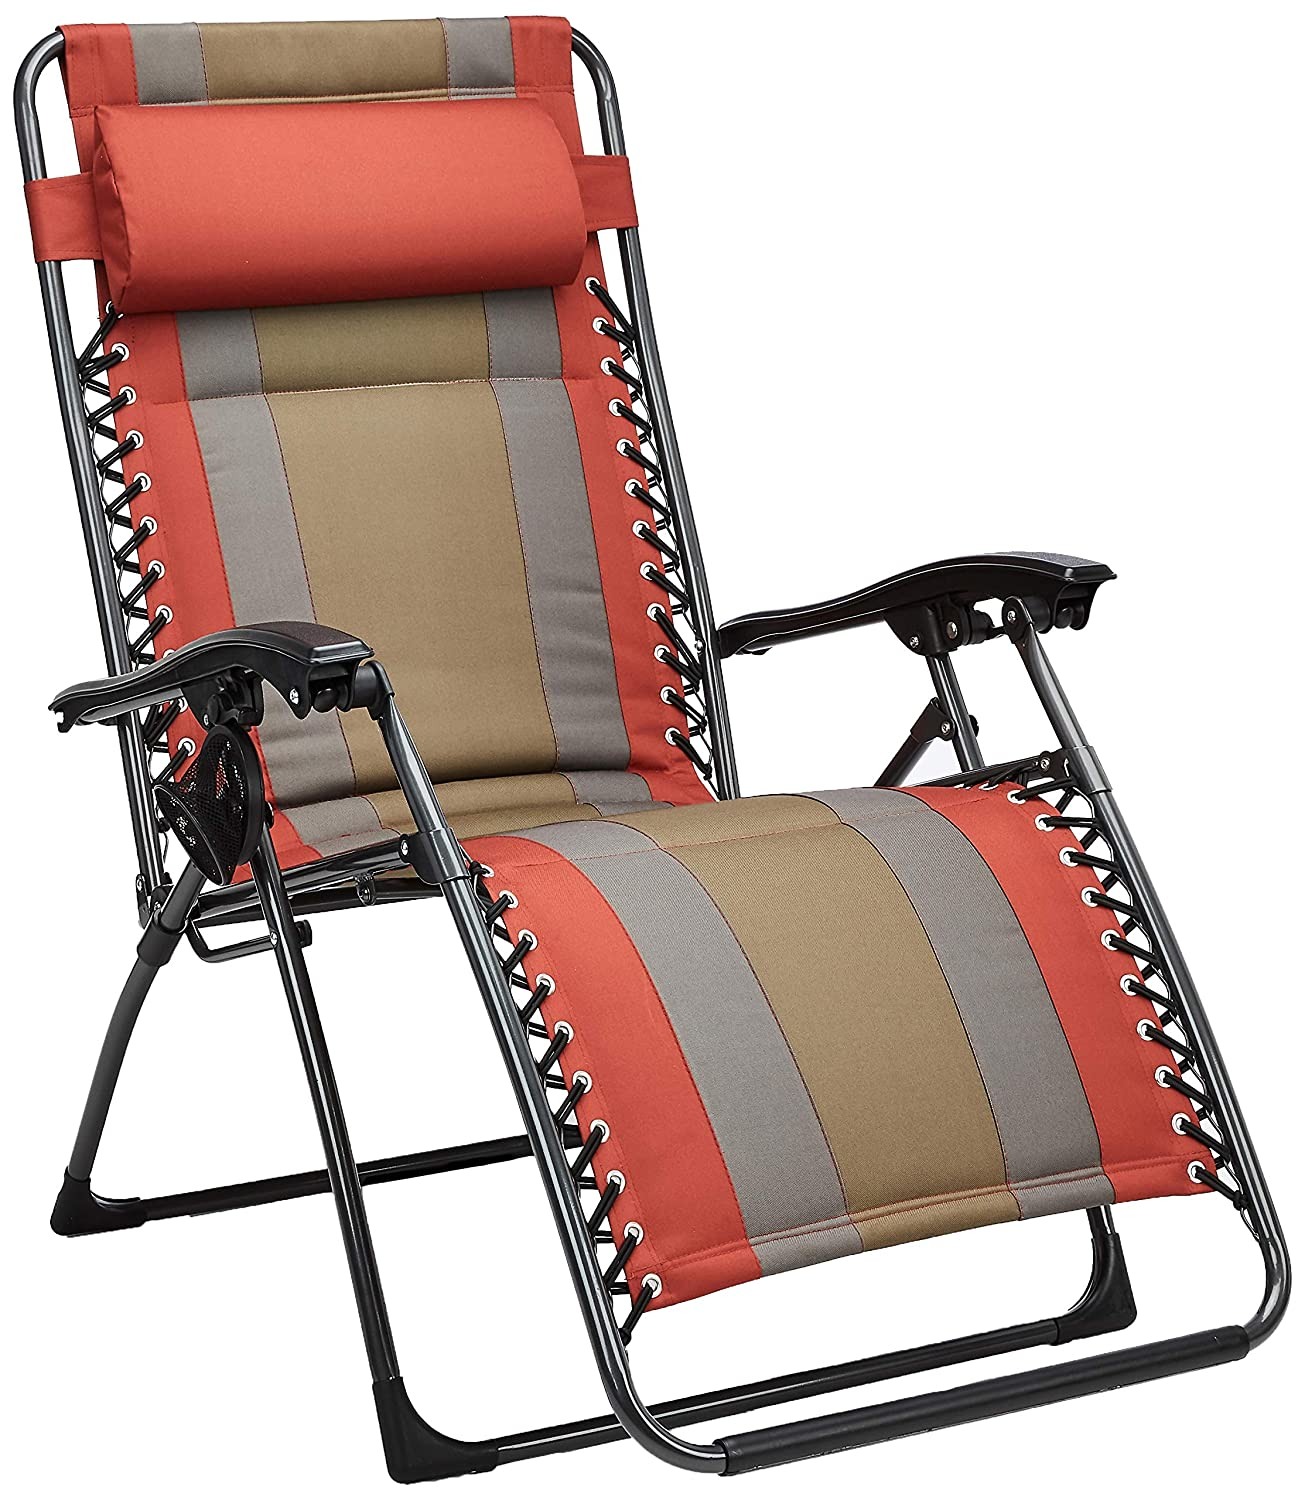 AmazonBasics Outdoor Padded Zero Gravity Lounge Beach Chair – 65 x 29.5 x 44.1 Inches, Red